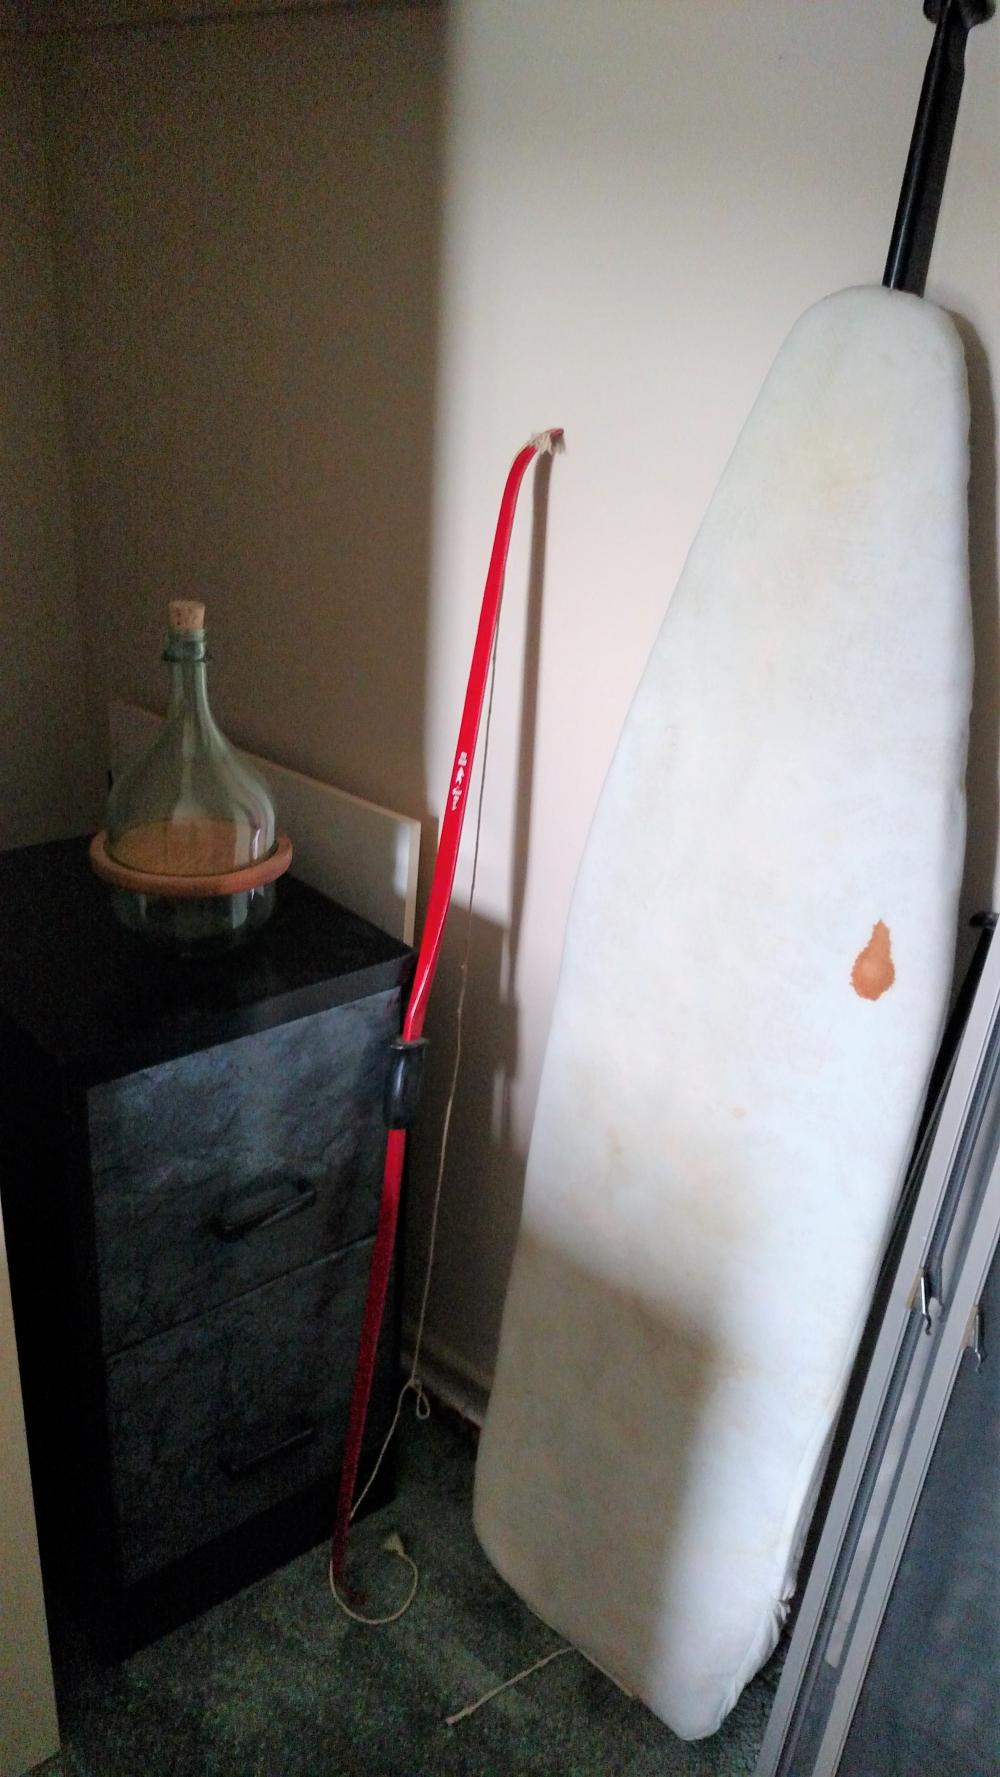 iron board, 2 drawer file cabinet, games, bottle, bow, misc